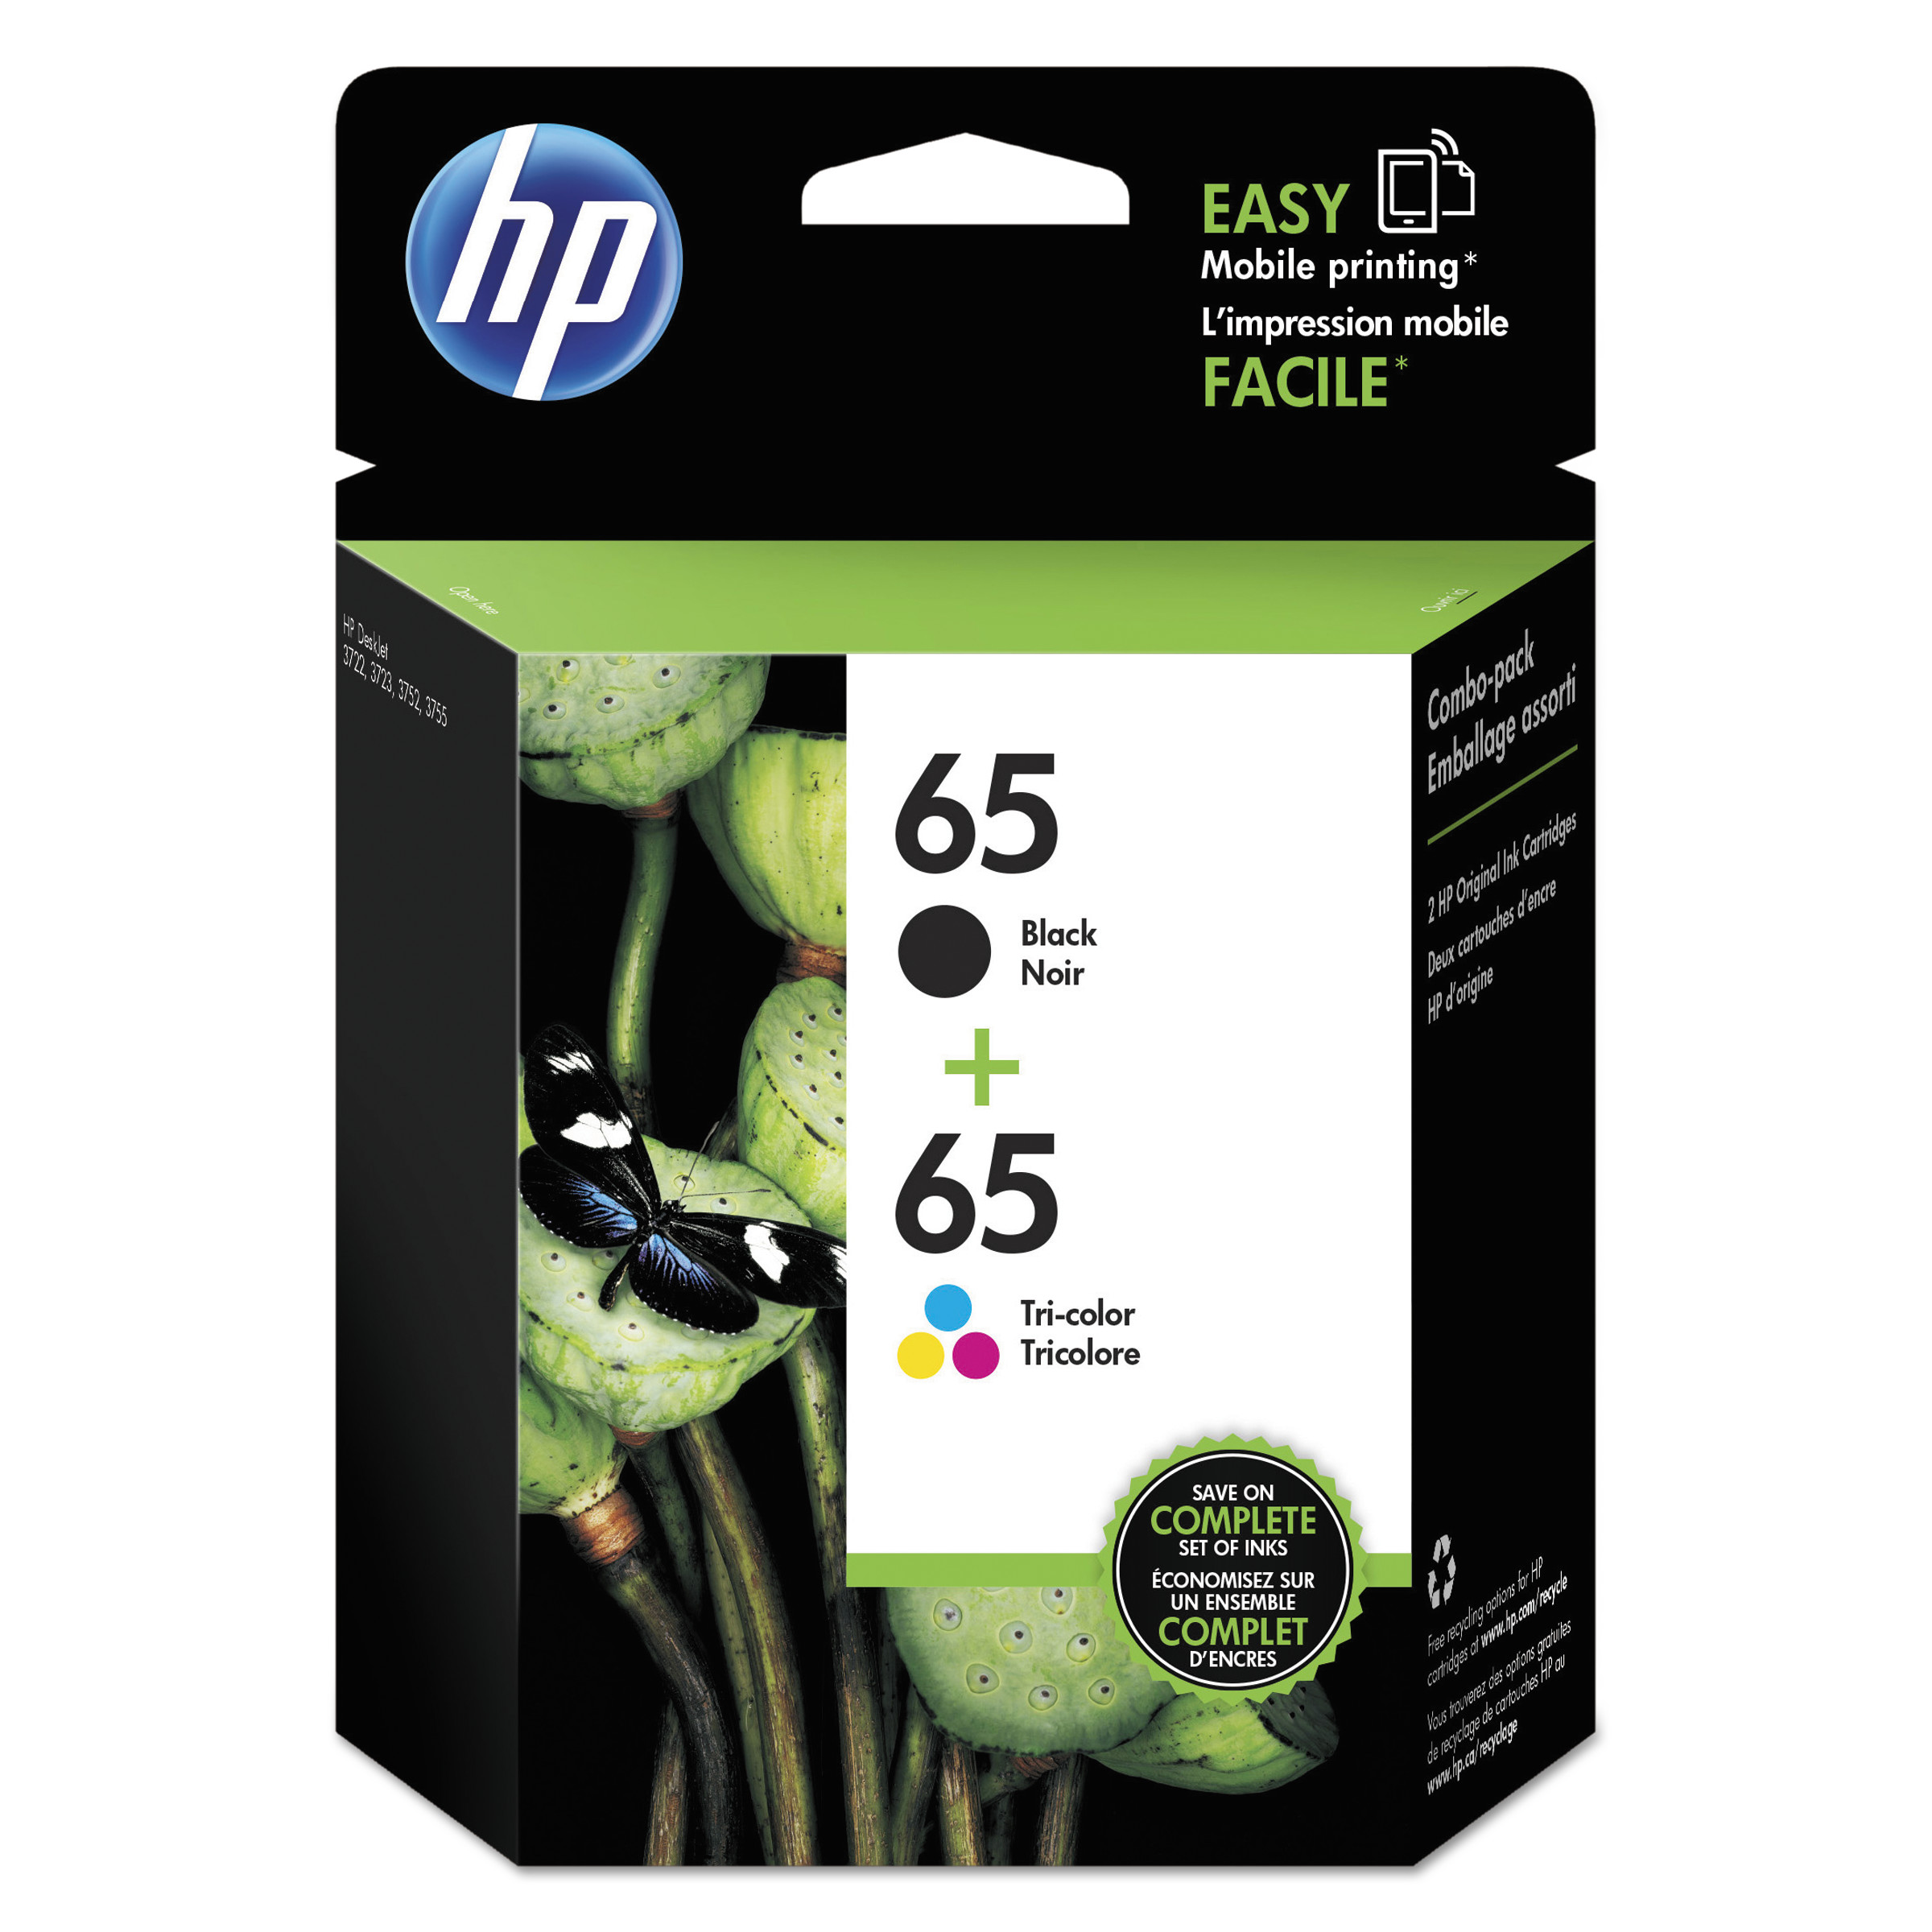 HP 65 Tri-color/Black Original Ink Cartridges, 2-Pack (T0A36AN)